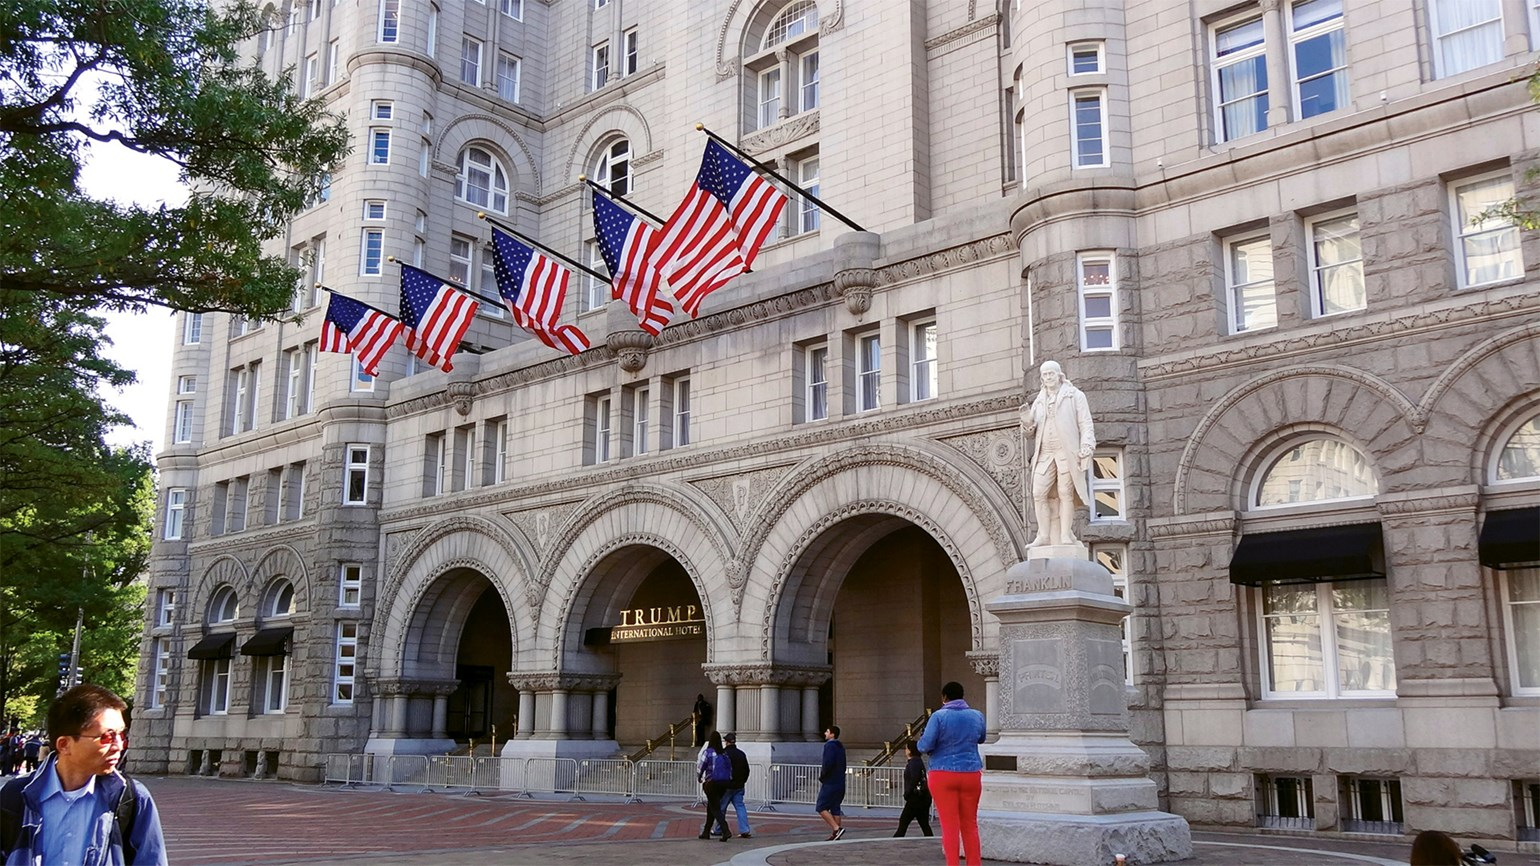 Trump's D.C. hotel compliant with lease, GSA says